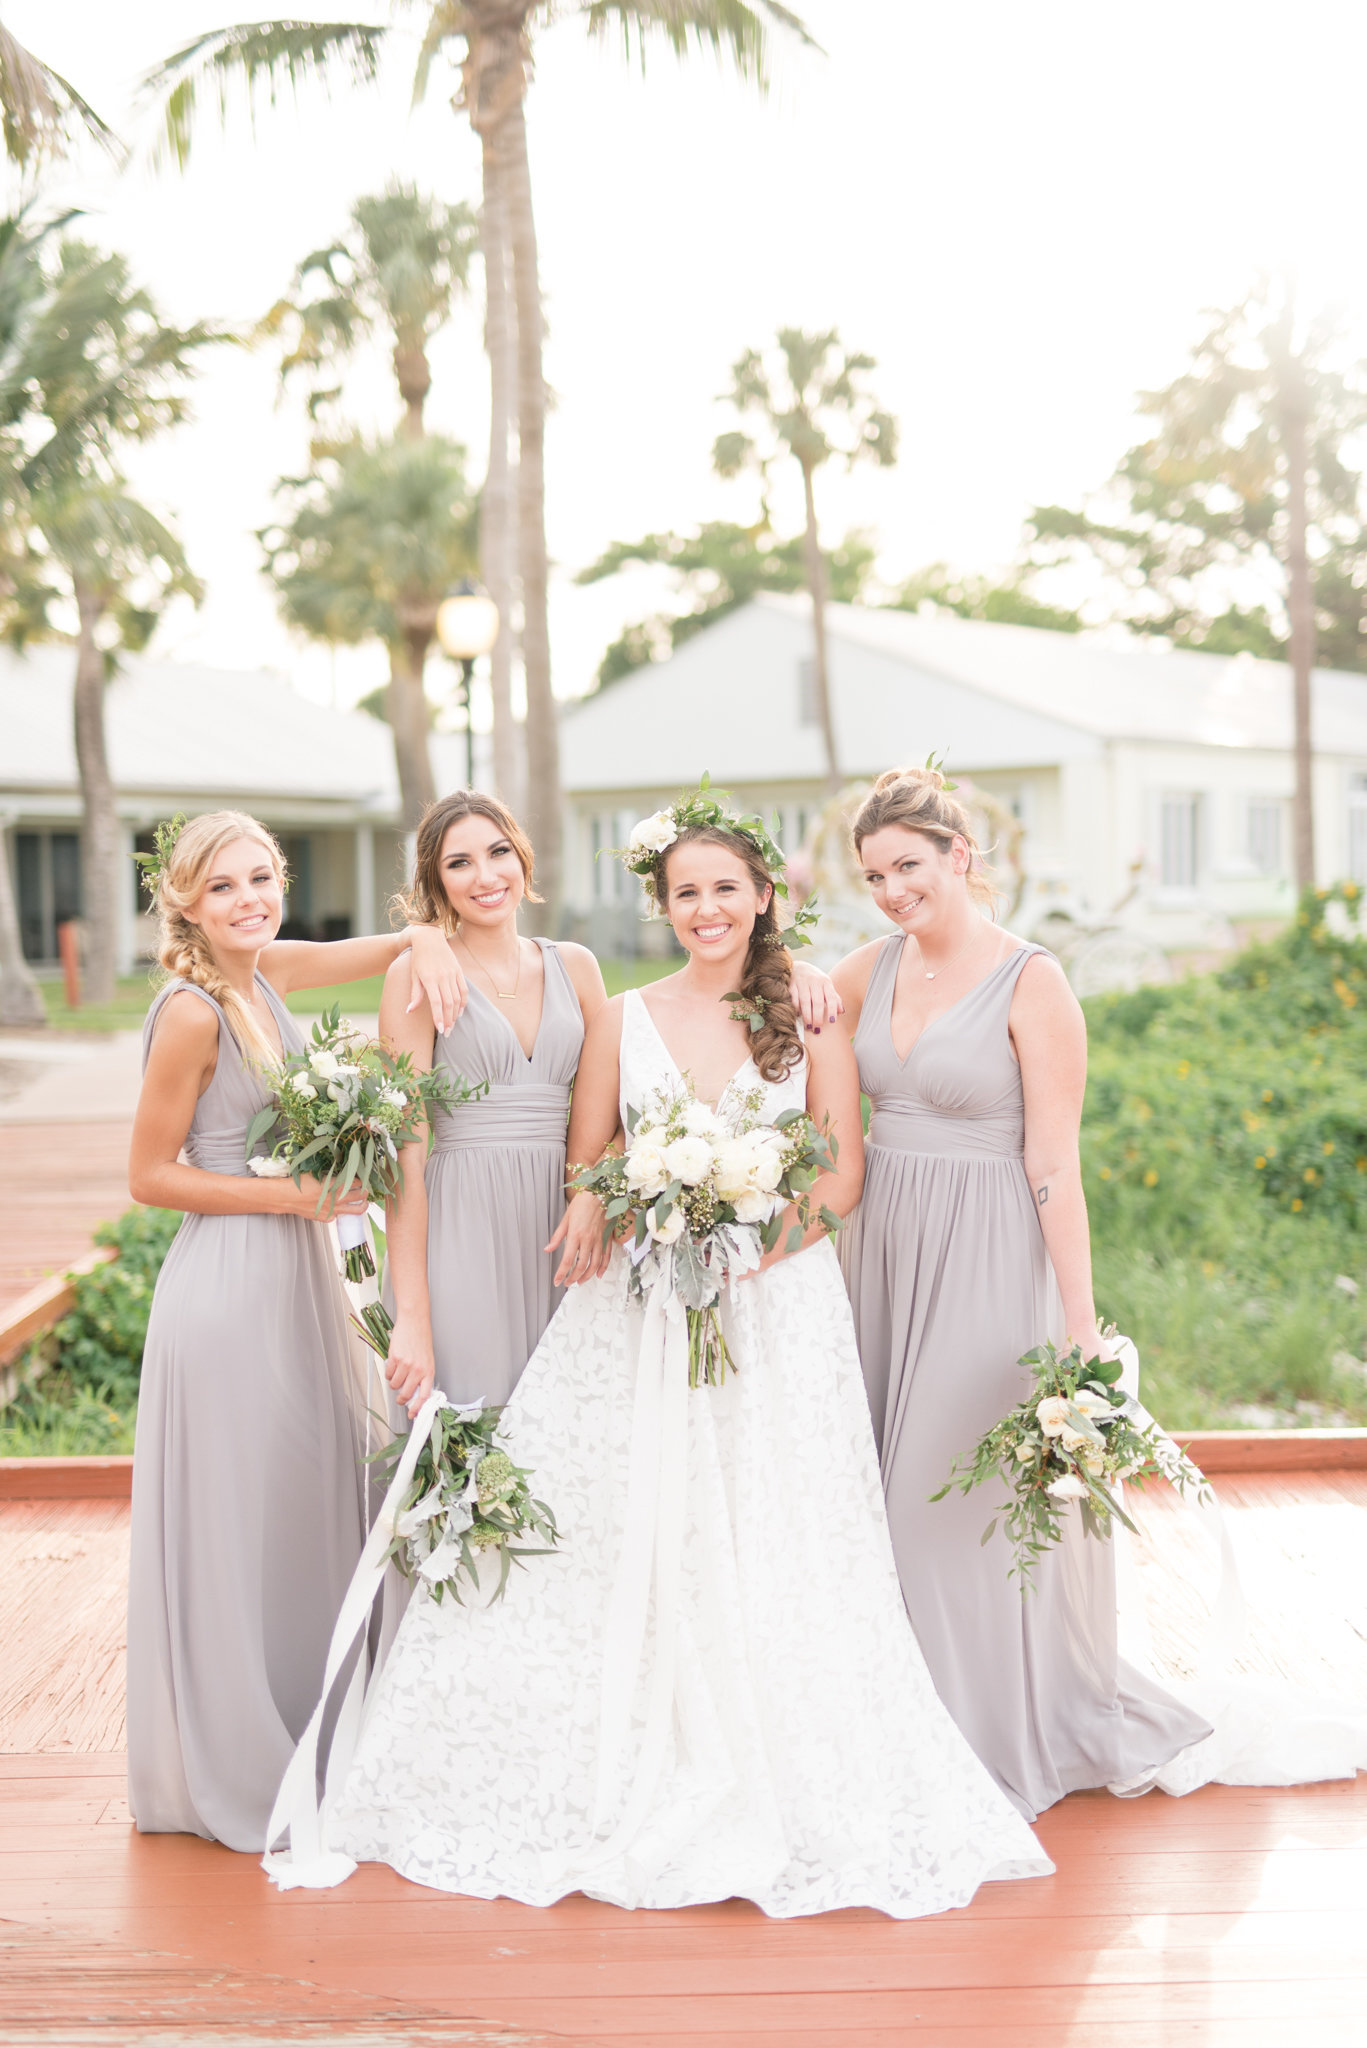 Tampa Bride and bridesmaids smile at camera.